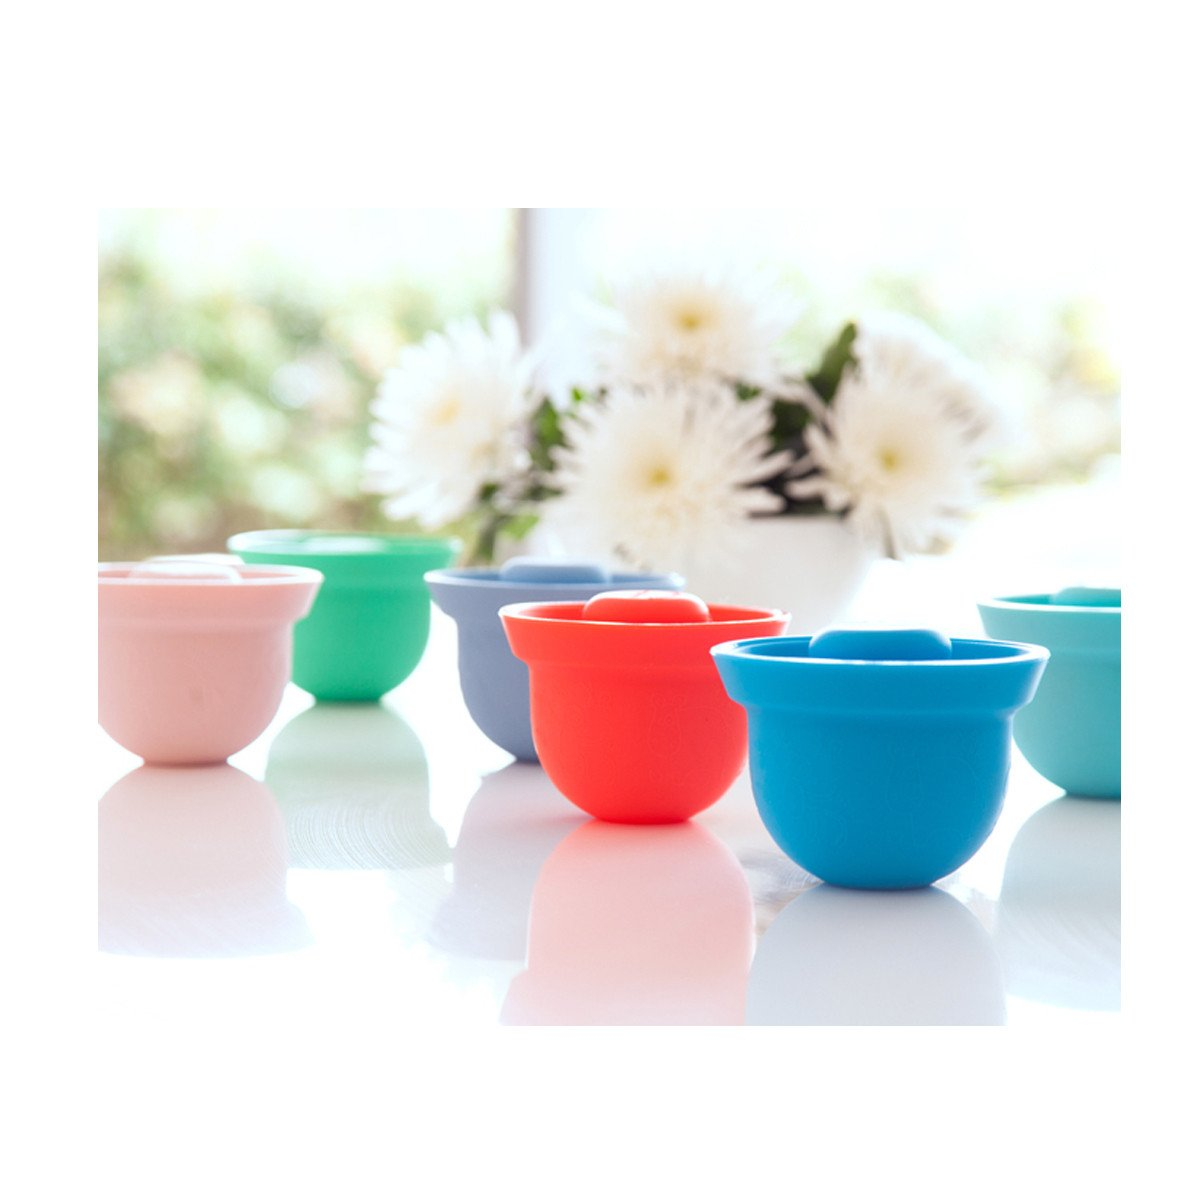 Wean Meister Pack of 2 Adora Bowls Wean Meister Baby Feeding at Little Earth Nest Eco Shop